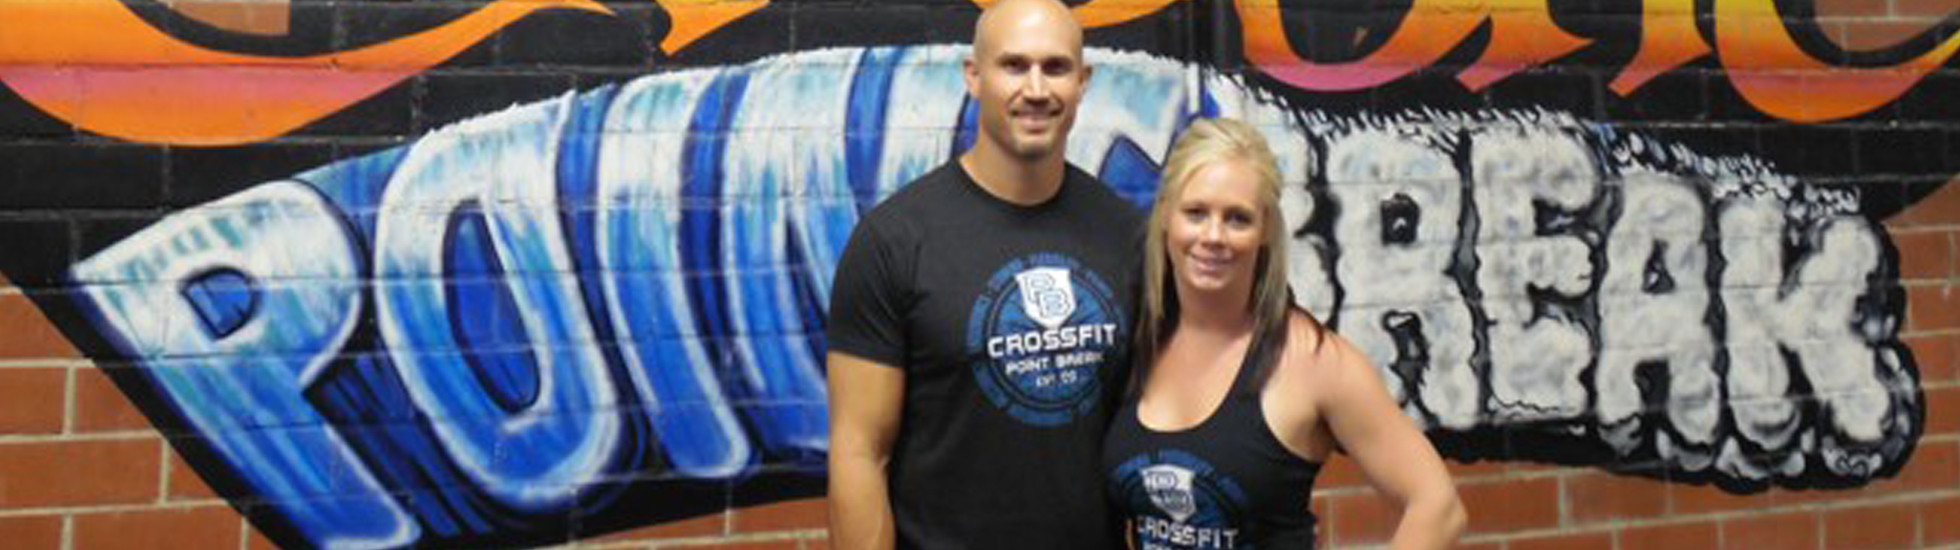 Why CrossFit Point Break Is Ranked One Of The Best Gyms In Spring TX